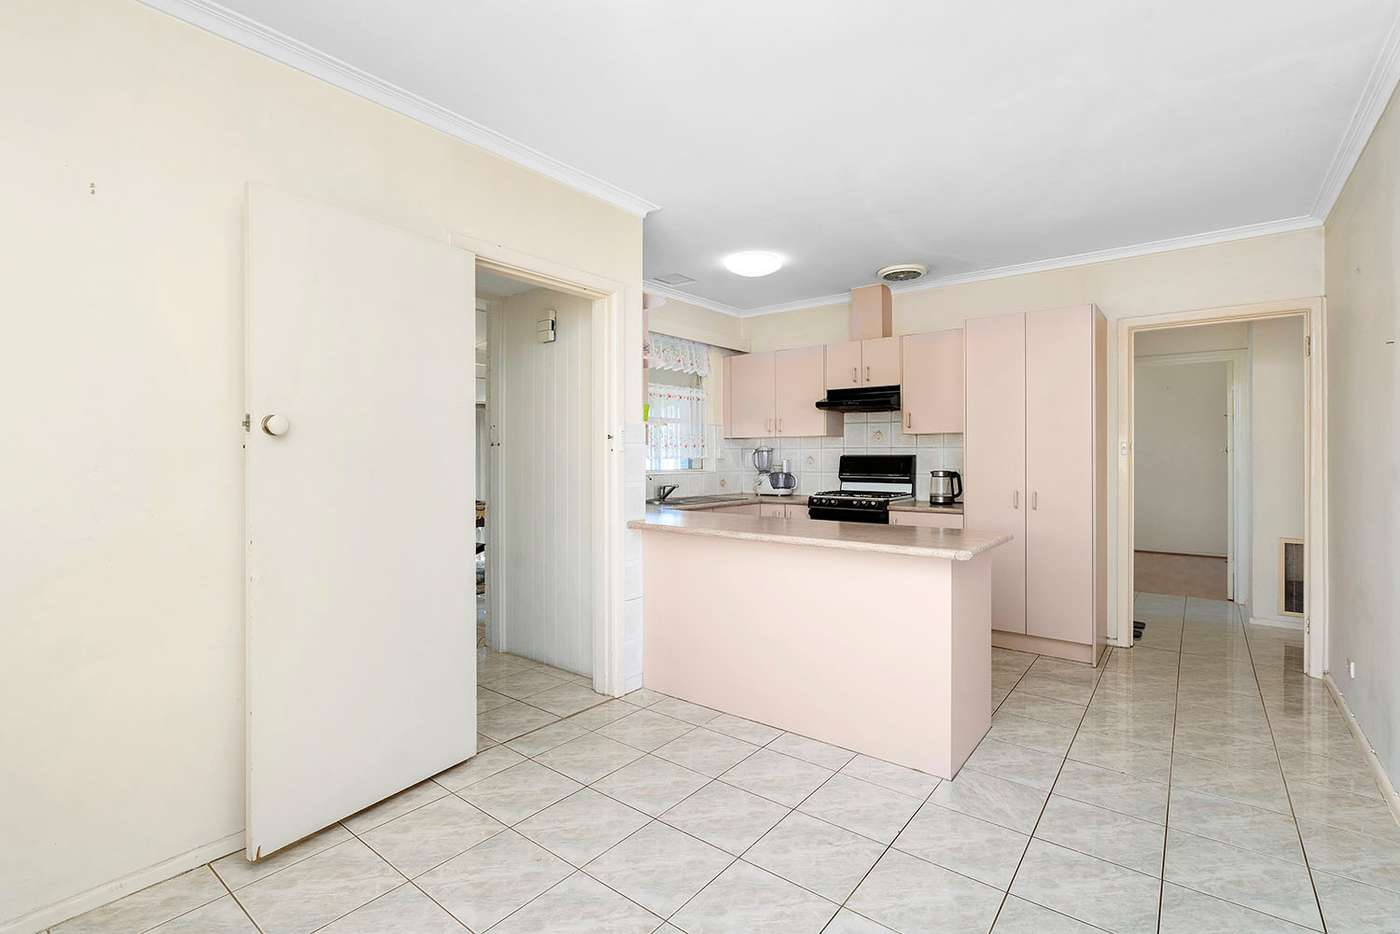 Sixth view of Homely house listing, 125 Centre Dandenong Road, Cheltenham VIC 3192